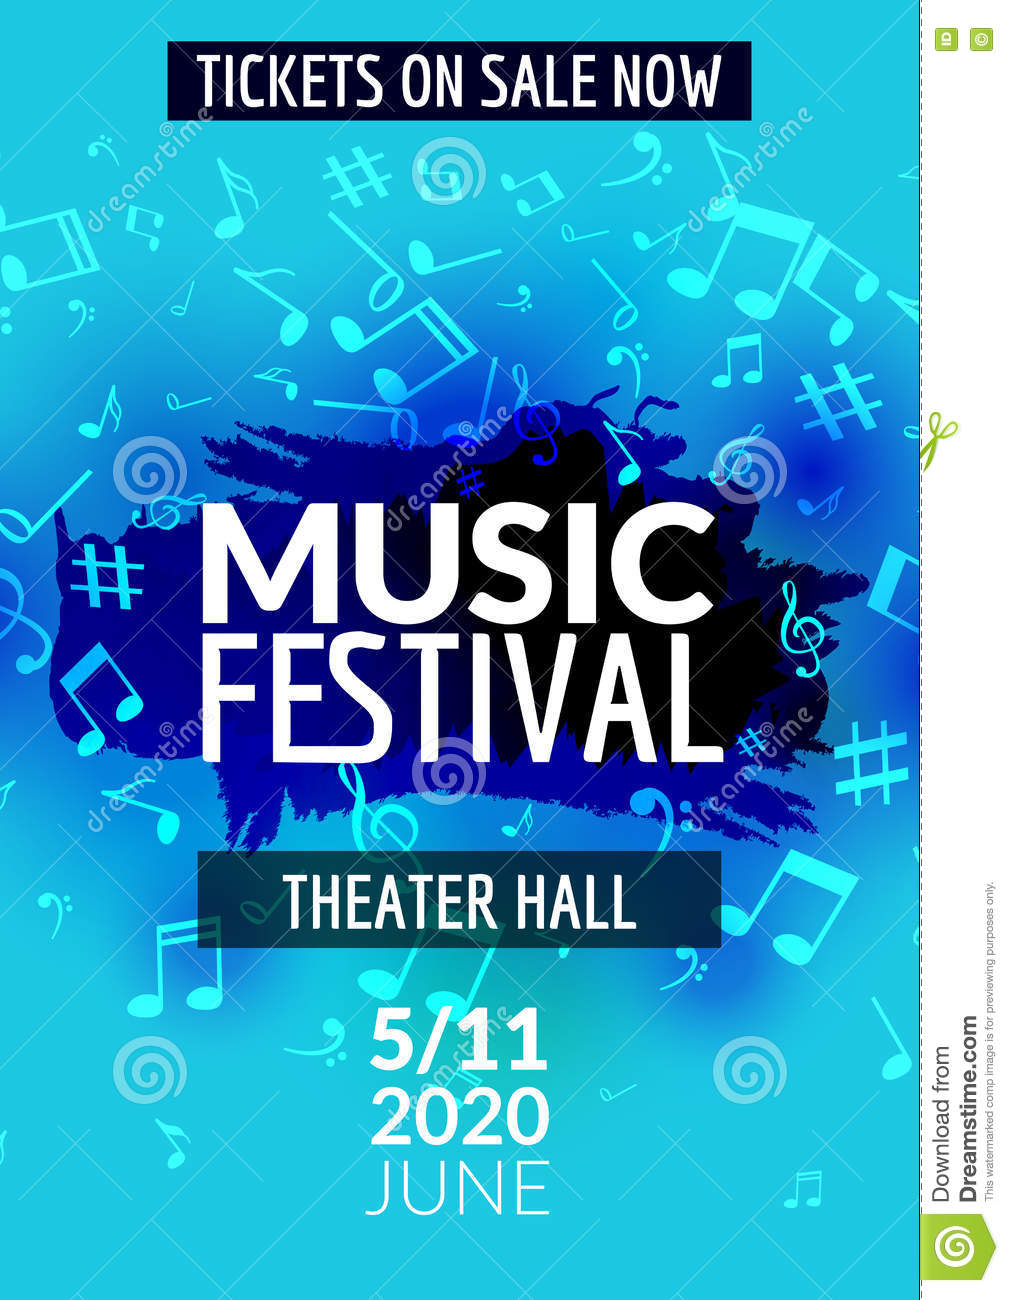 Poster design notes - Colorful Concert Design Festival Flyer Music Musical Poster Template Vector Note